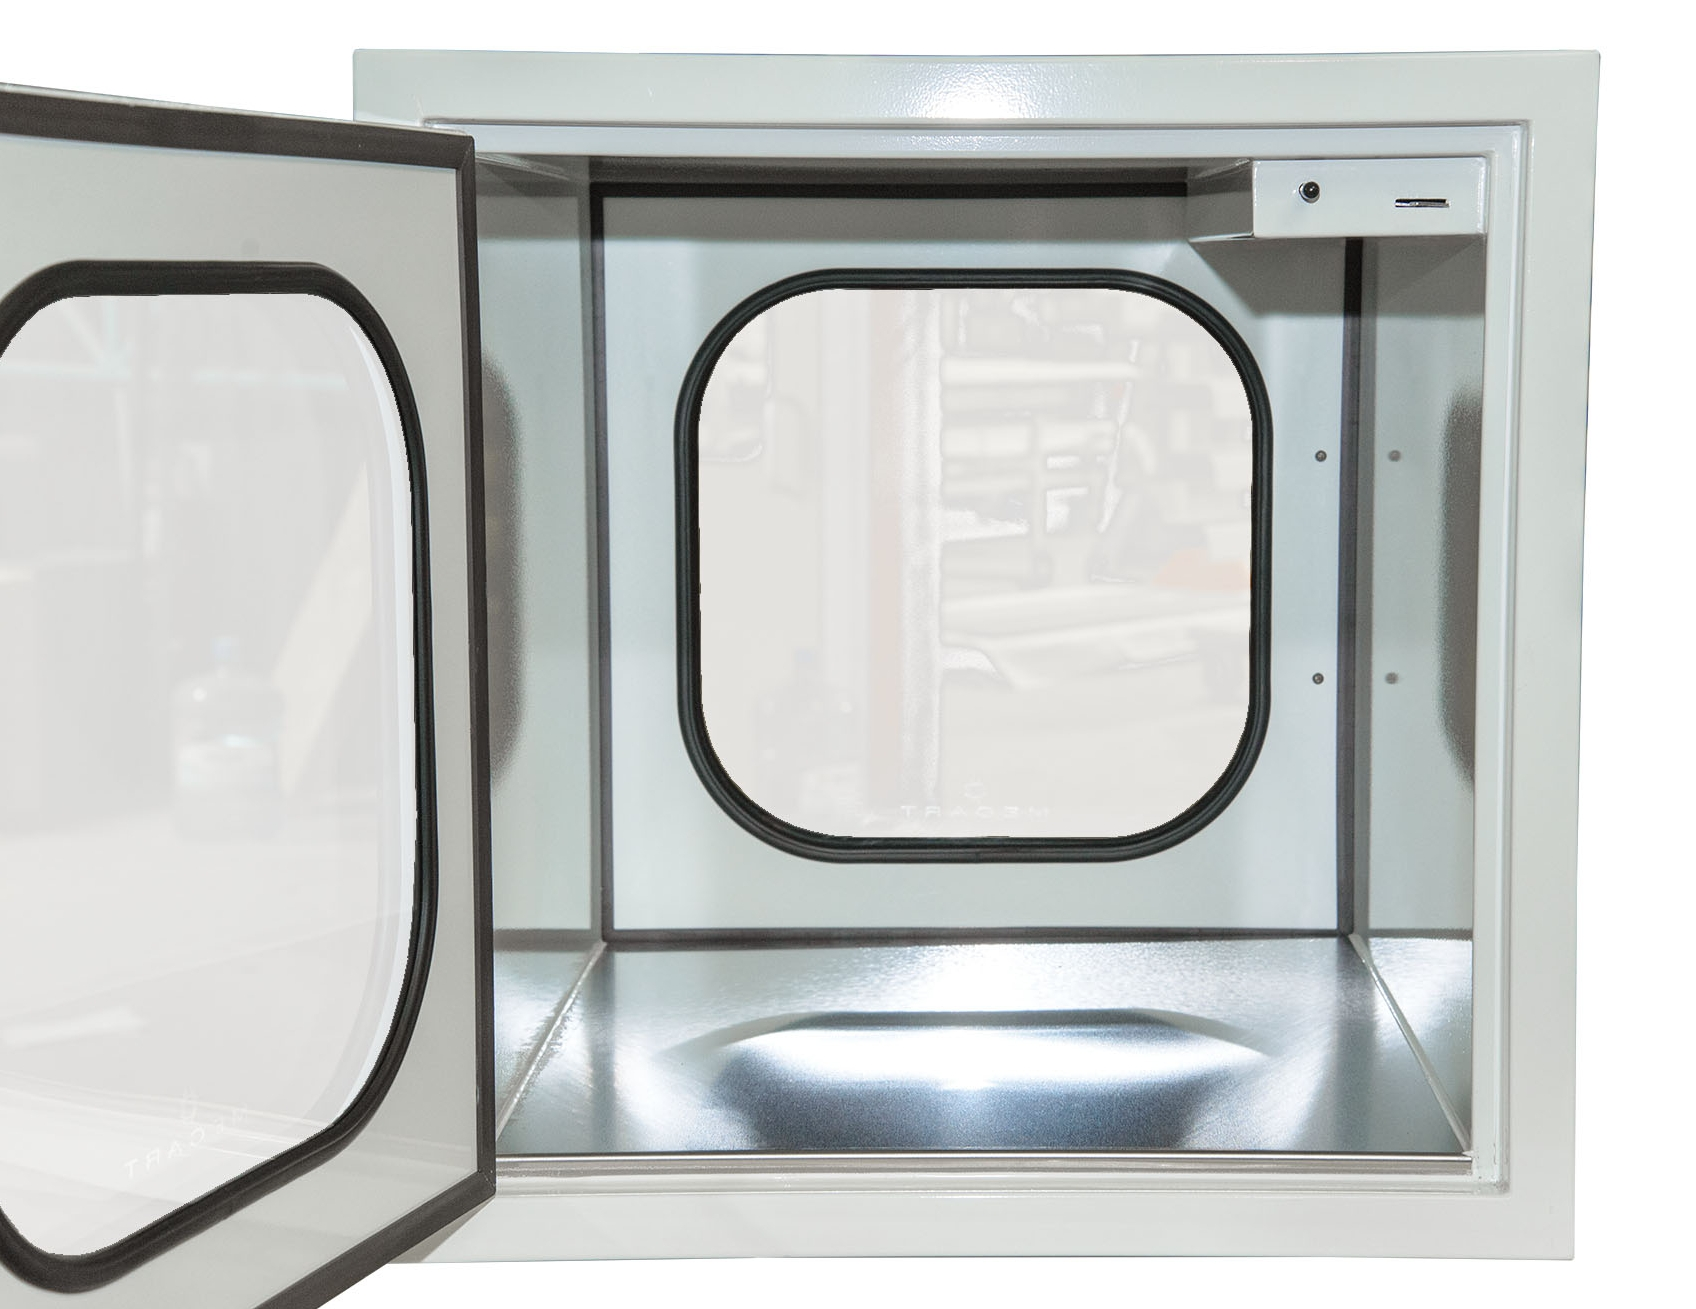 mecart pass-through for cleanroom stainless steel bottom inside inside view